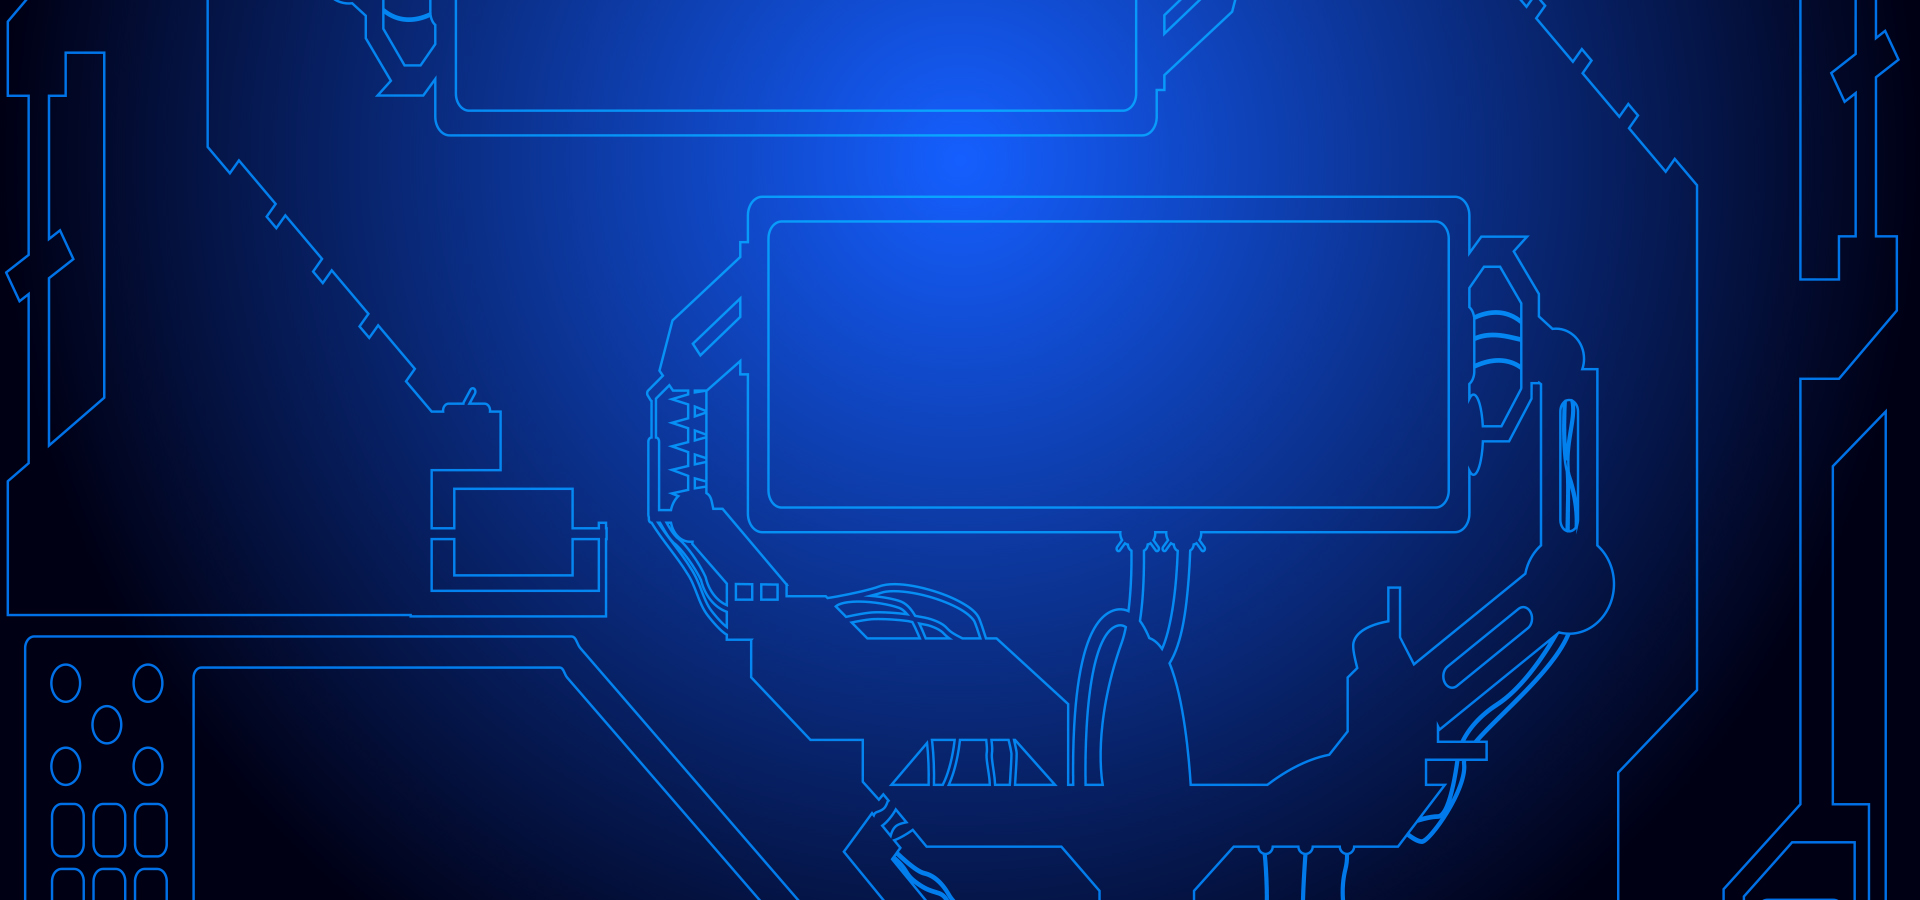 Science And Technology Of Hightech Circuit Board Background High Photo Abstract Blue Vector With Tech Image For Free Download